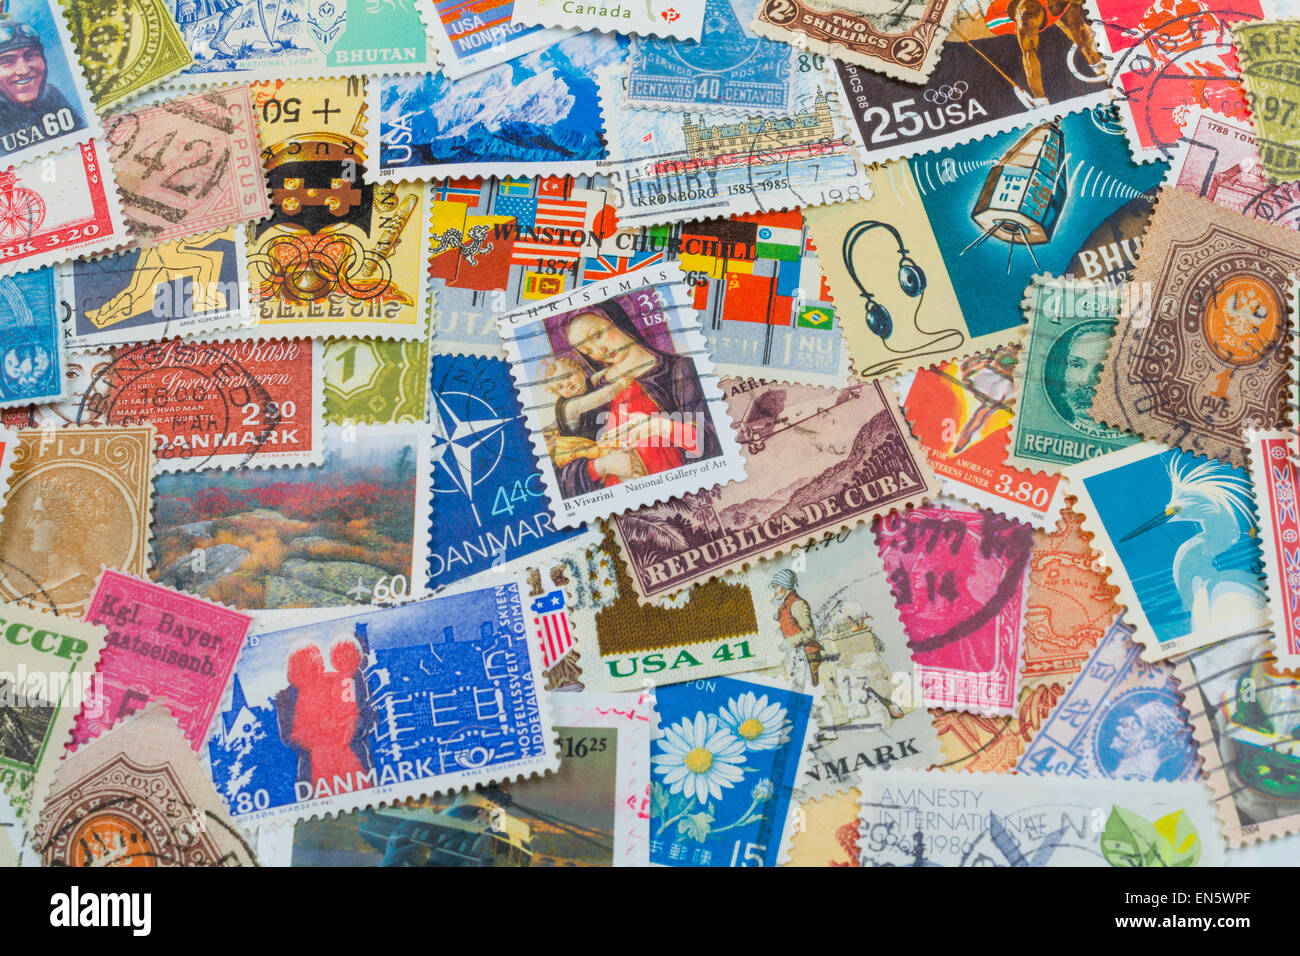 Stamp Collage from postmarked stamps from countries all over the world.  Bright vivid color for background - Stock Image